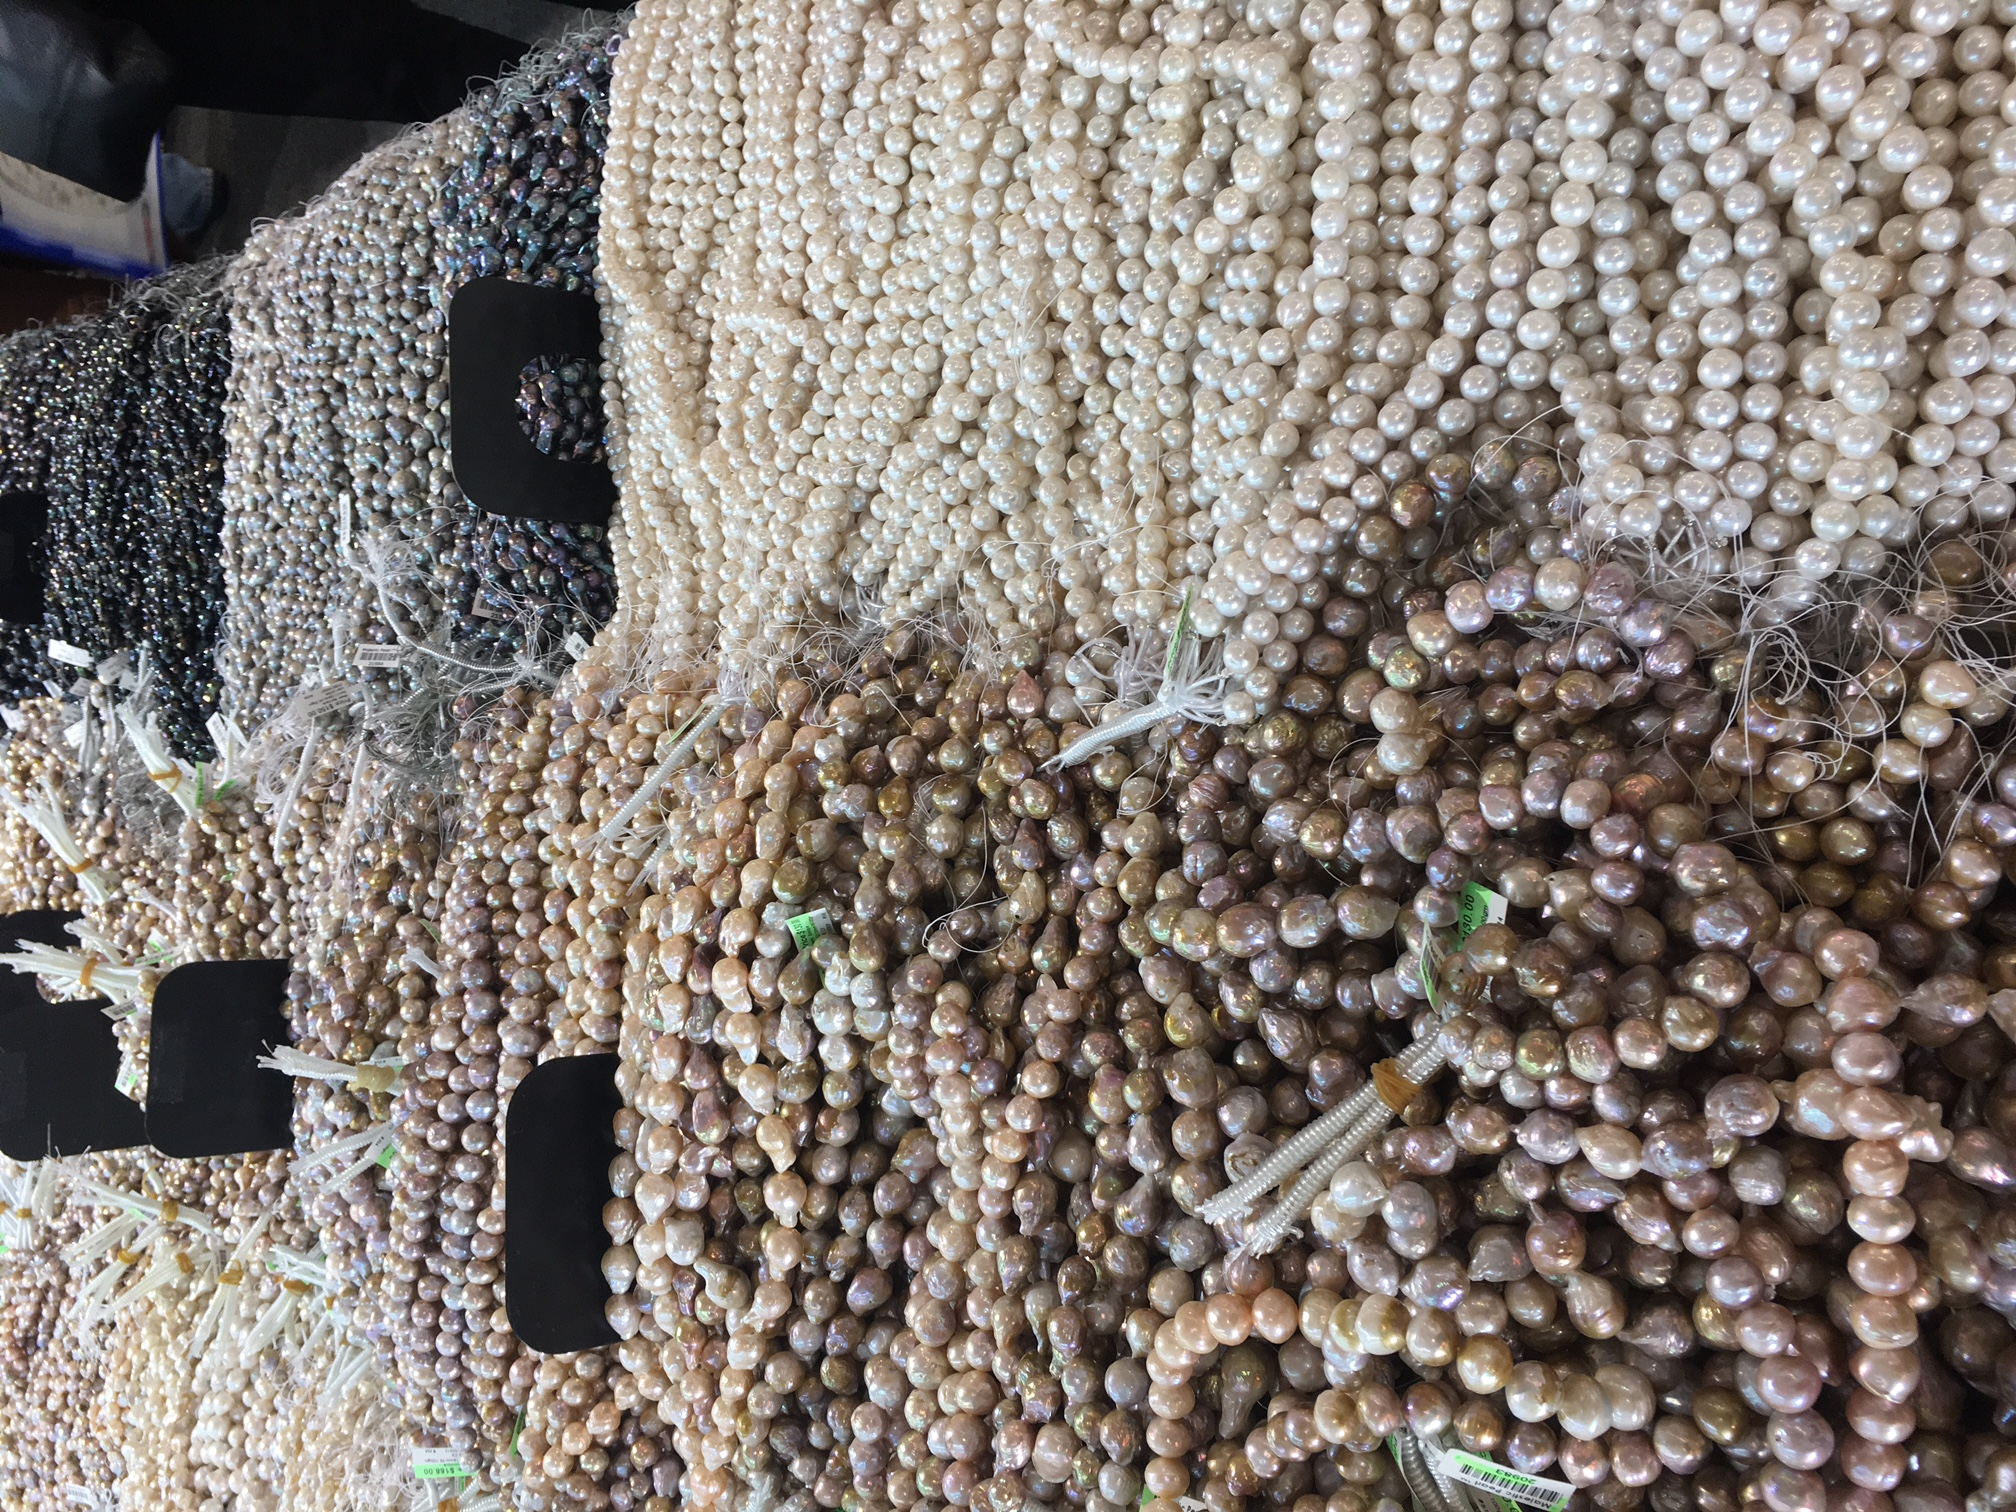 Big sea of pearls at The Tucson Gem Show